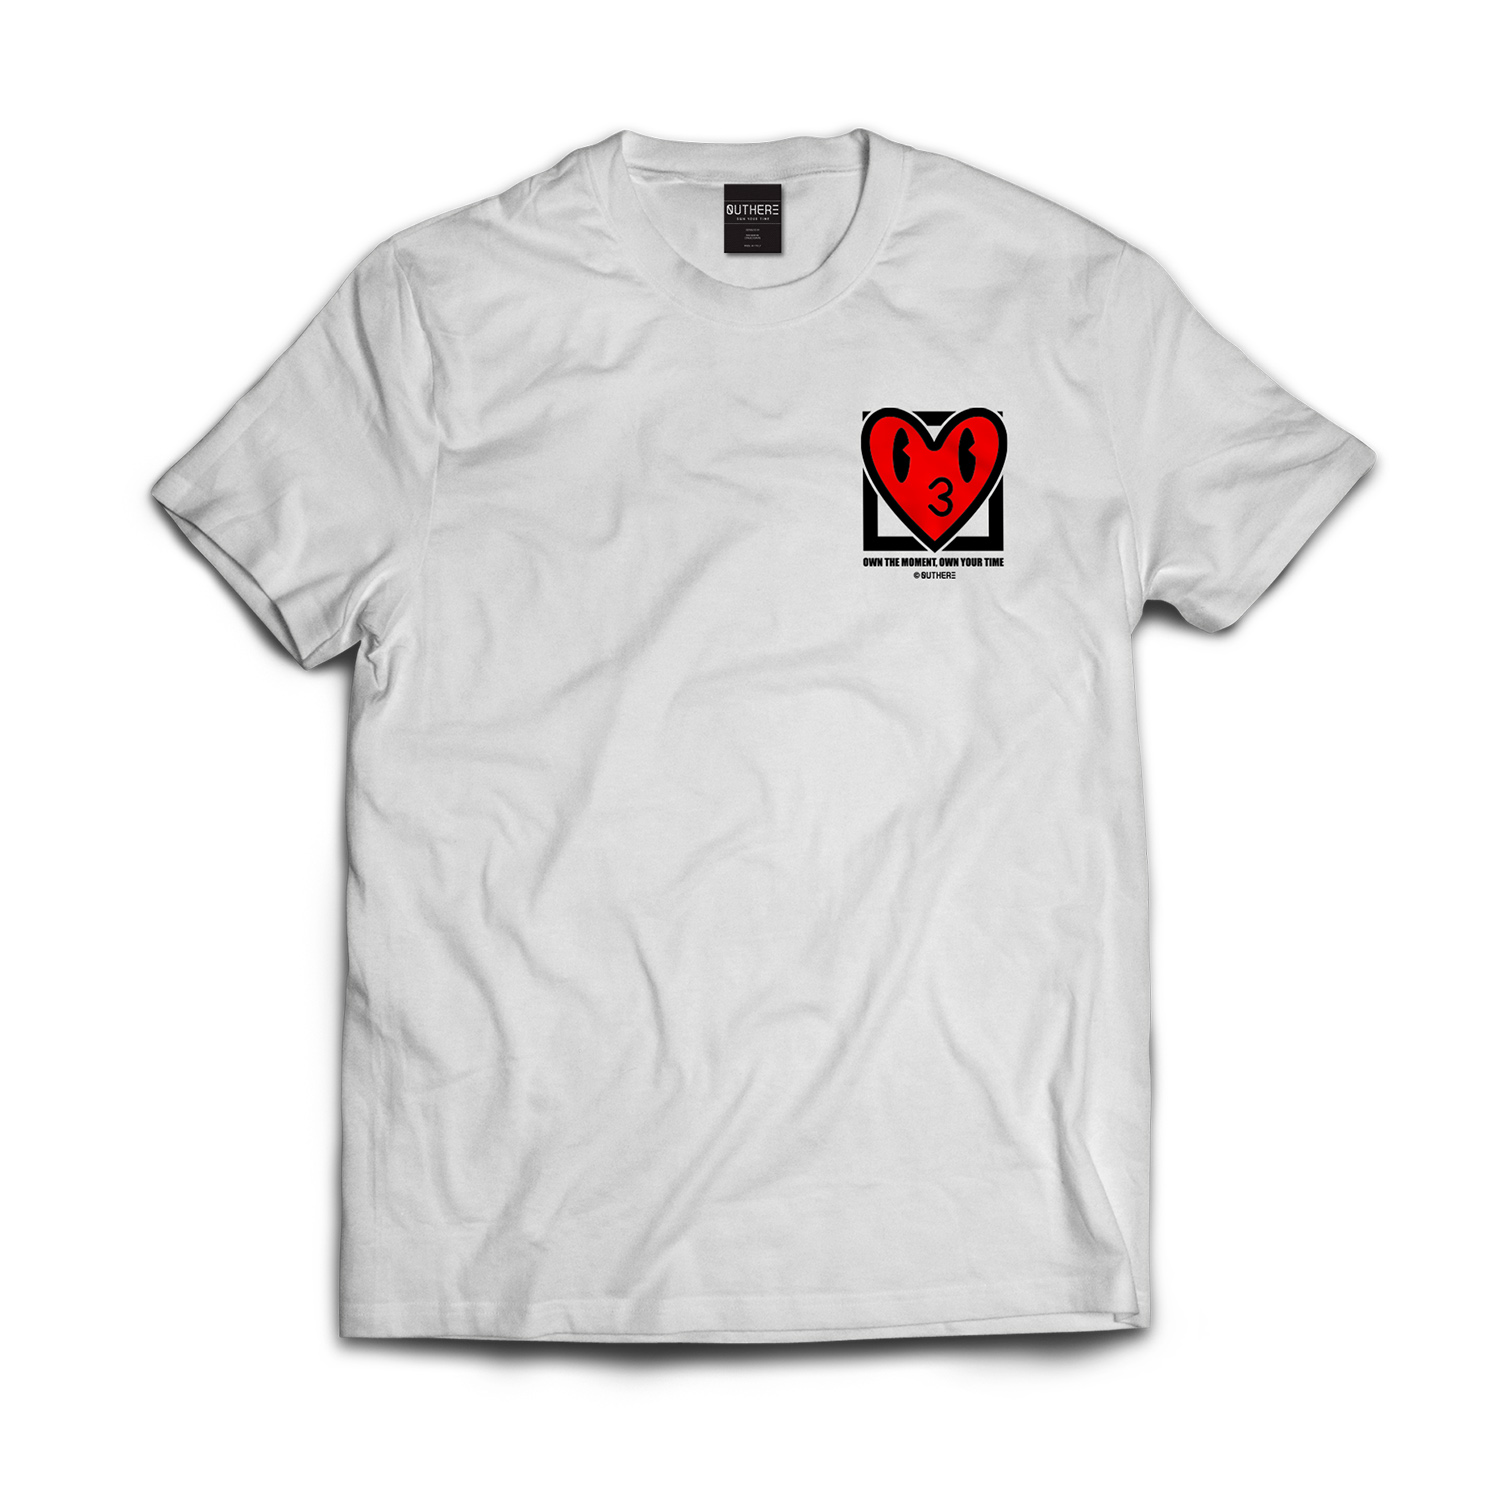 Outhere T-shirt mezza manica stampata Cupid Outhere | 8 | 1356412